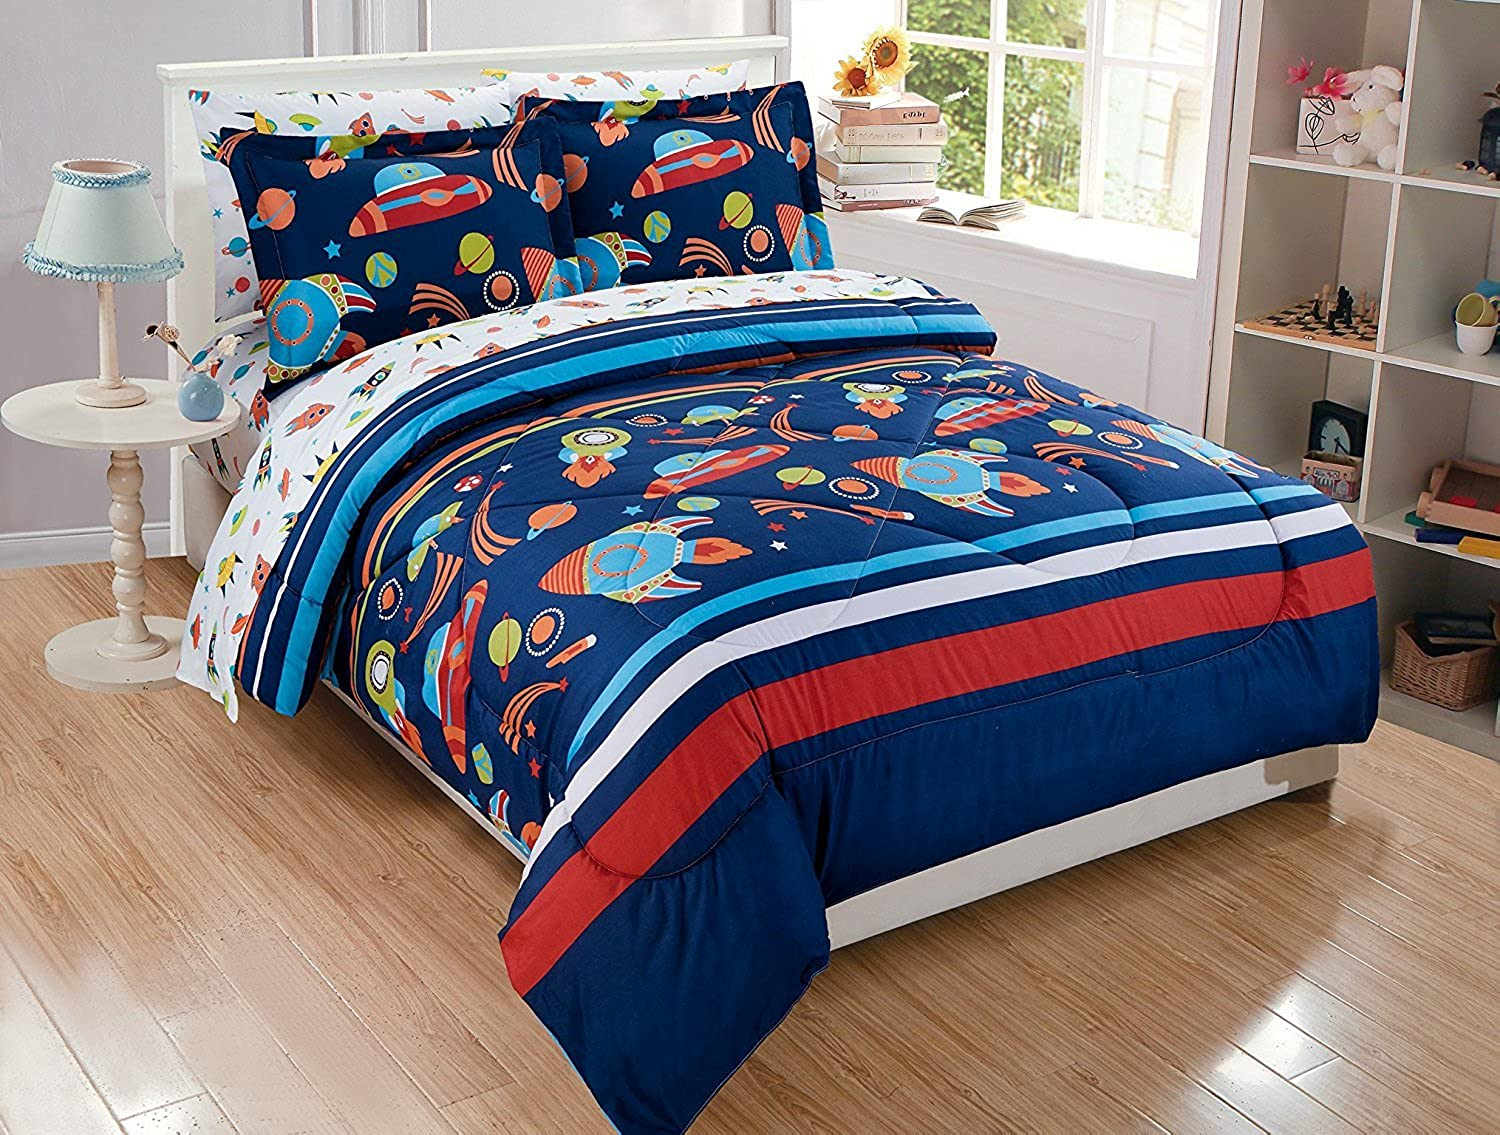 Elegant Home Multicolor Solar System With Space Ships & Rockets Universe Galaxy Stars Design 5 Piece Twin Size Comforter Bedding Set for Boys Kids Bed In a Bag With Sheet Set   Solar (Twin Size)